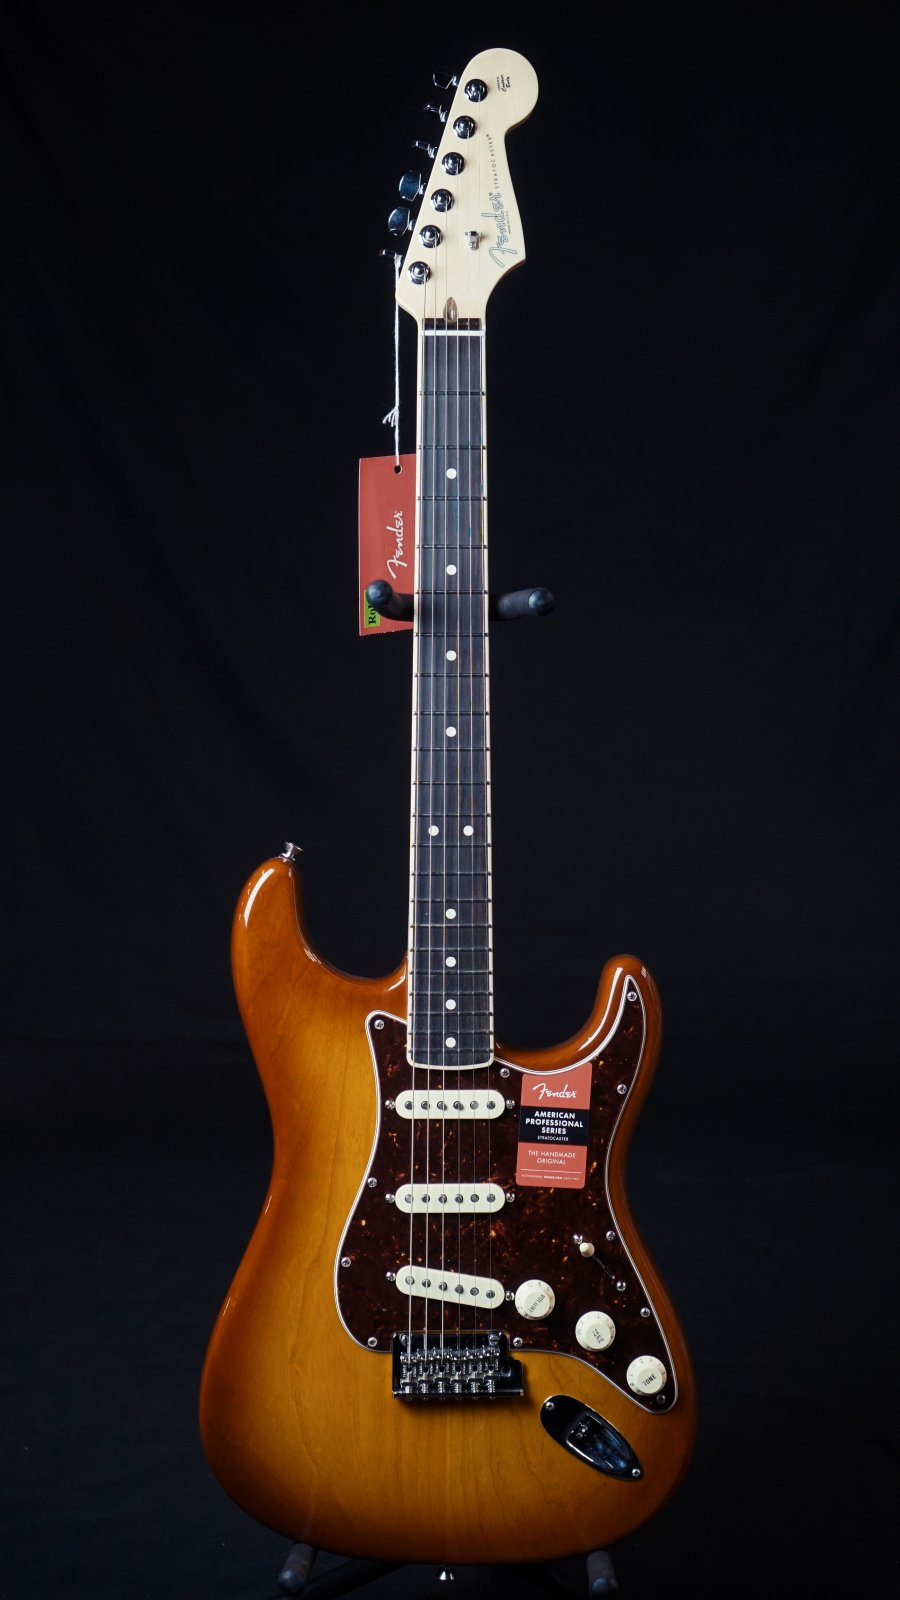 Fender Limited Edition American Pro Stratocaster, Honeyburst, Channel-Bound Rosewood Neck